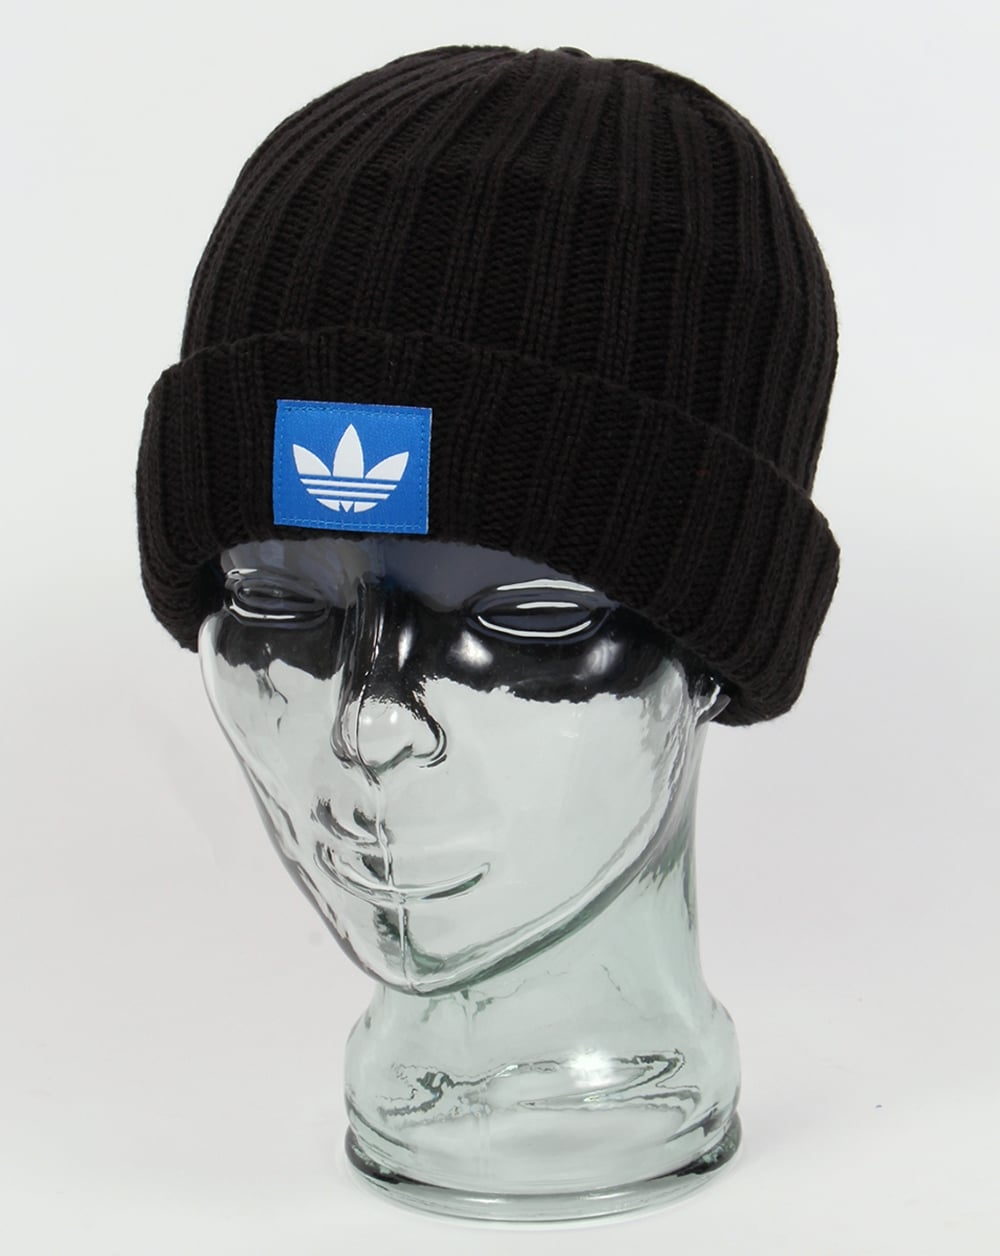 cd39869cb40789 Adidas Original Beanie Hats - Latest and Best Hat Models